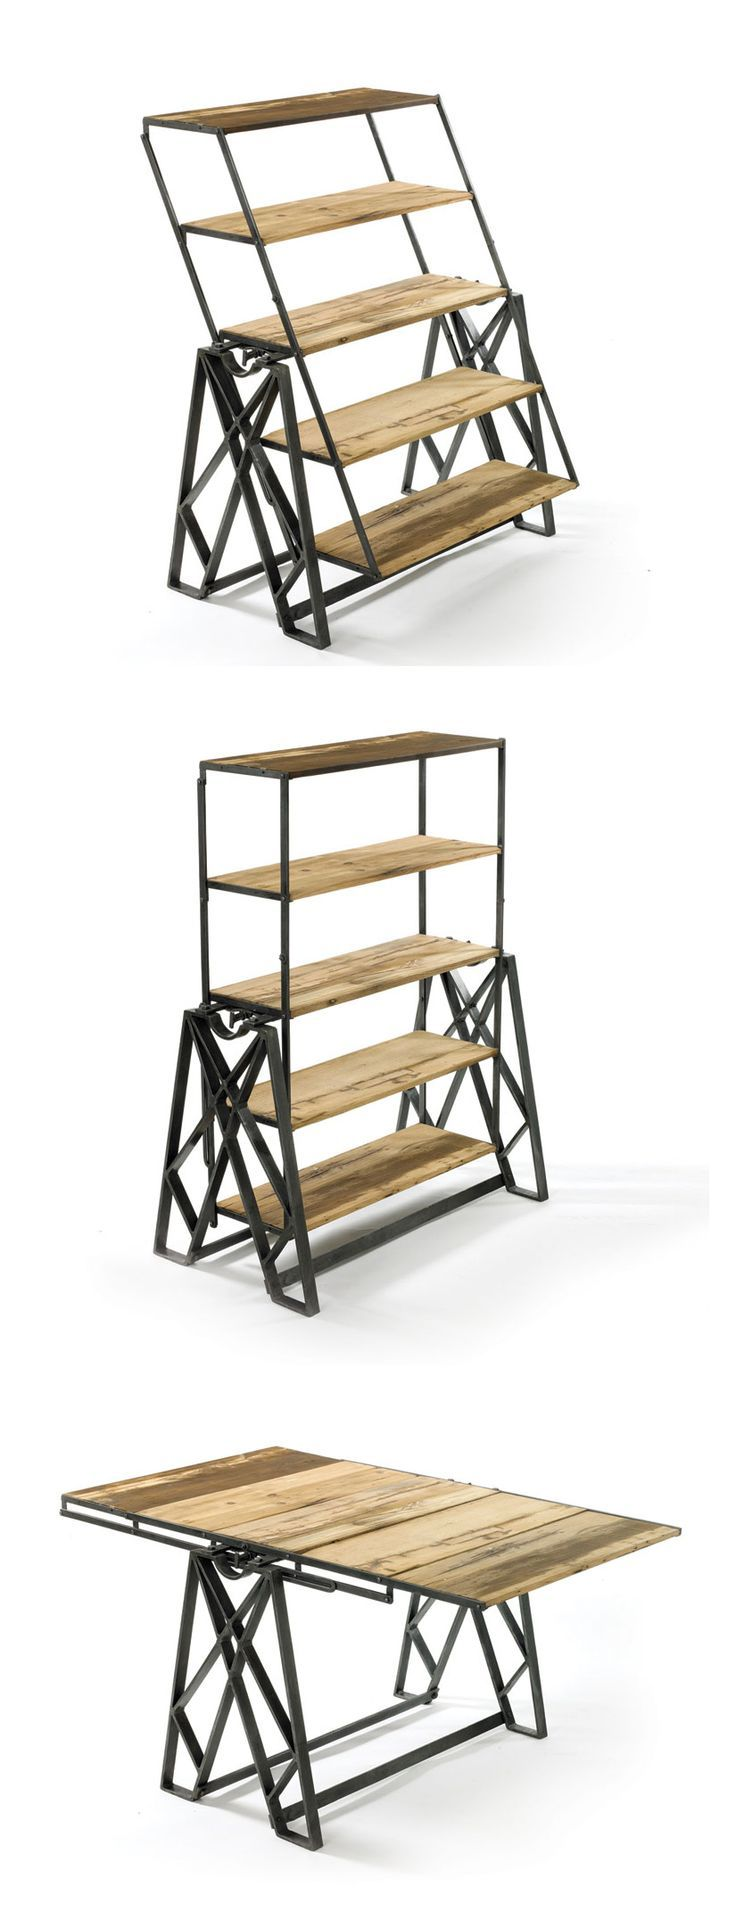 Reclaimed Wood Convertible Shelf Table | Great design!!